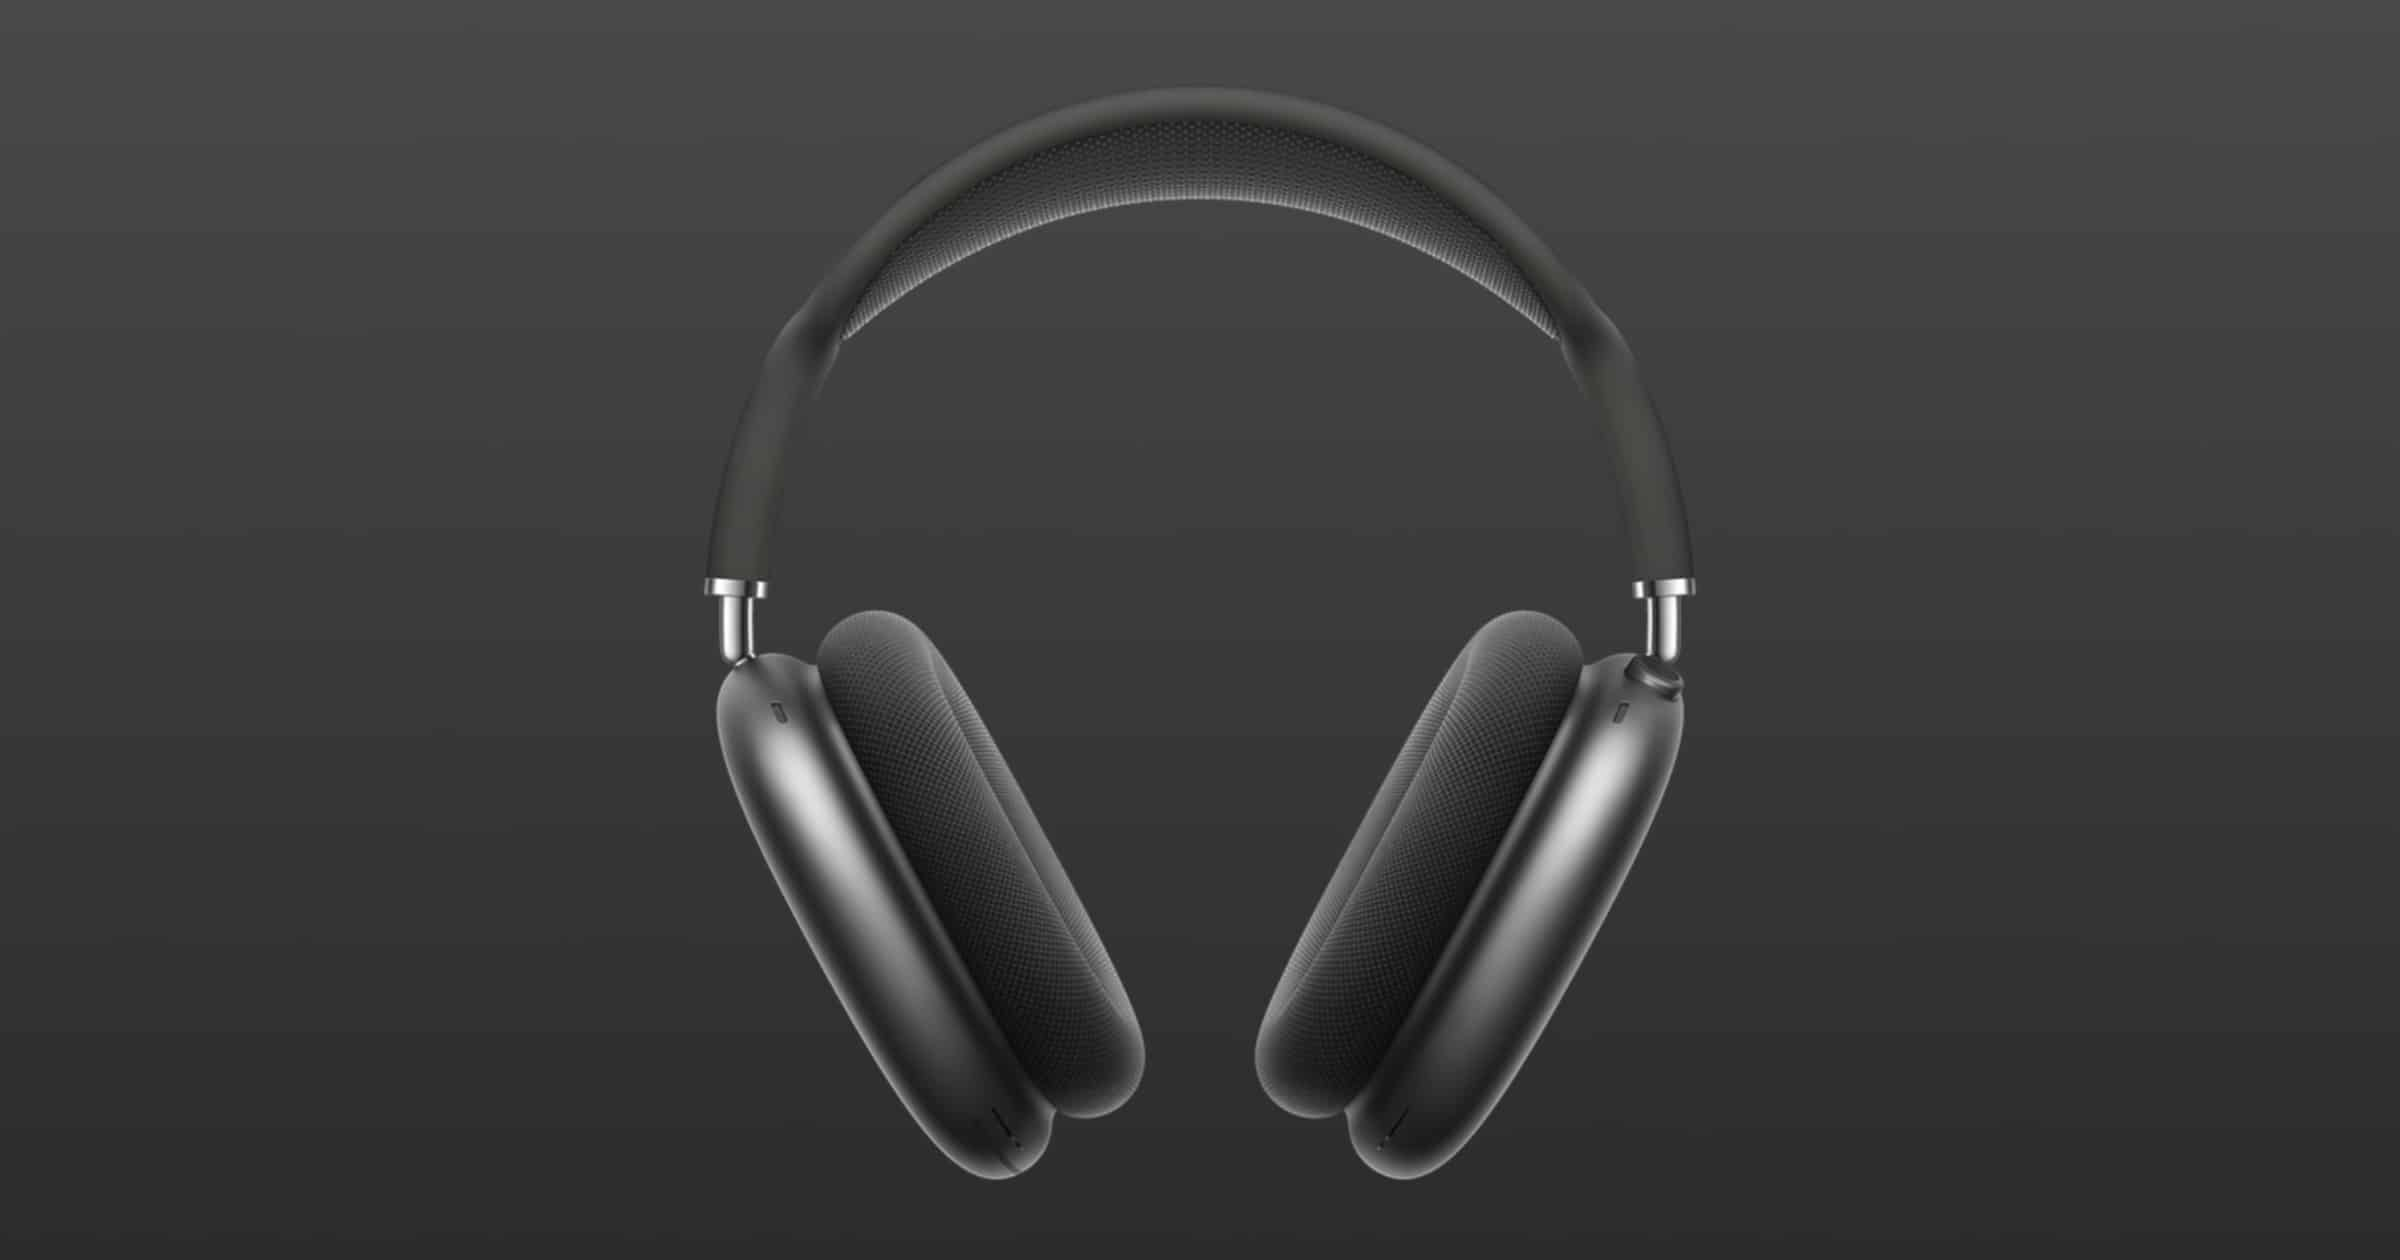 I'm not an audiophile, but here are my thoughts on Apple's AirPods Max - Numeric Citizen Blog